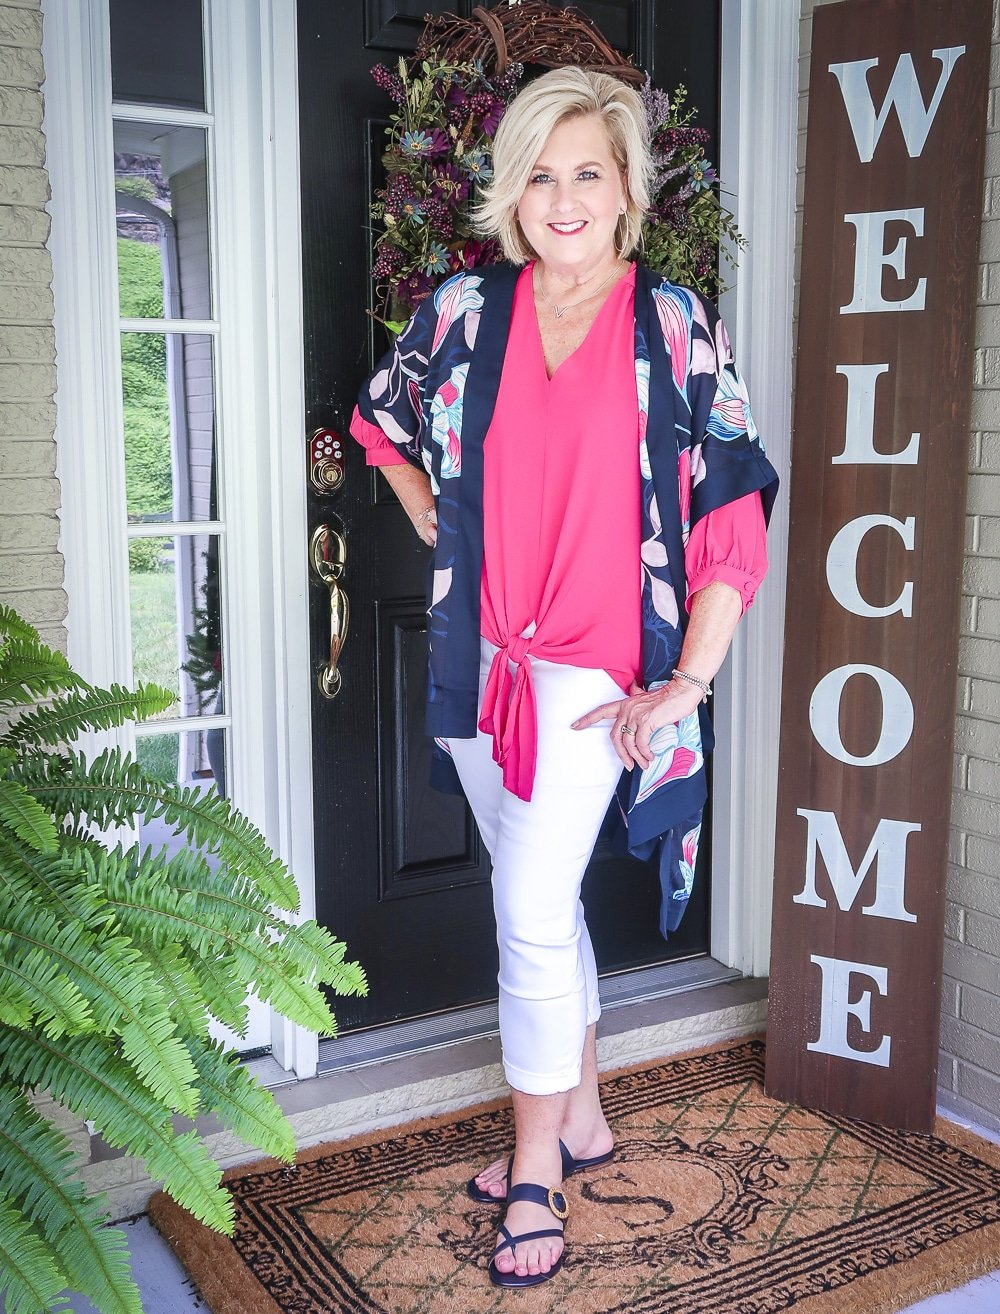 Fashion Blogger 50 Is Not Old is bright and colorful in a tie-front pink blouse, white girlfriend crop jeans, floral navy ruana from Chicos, and navy sandals